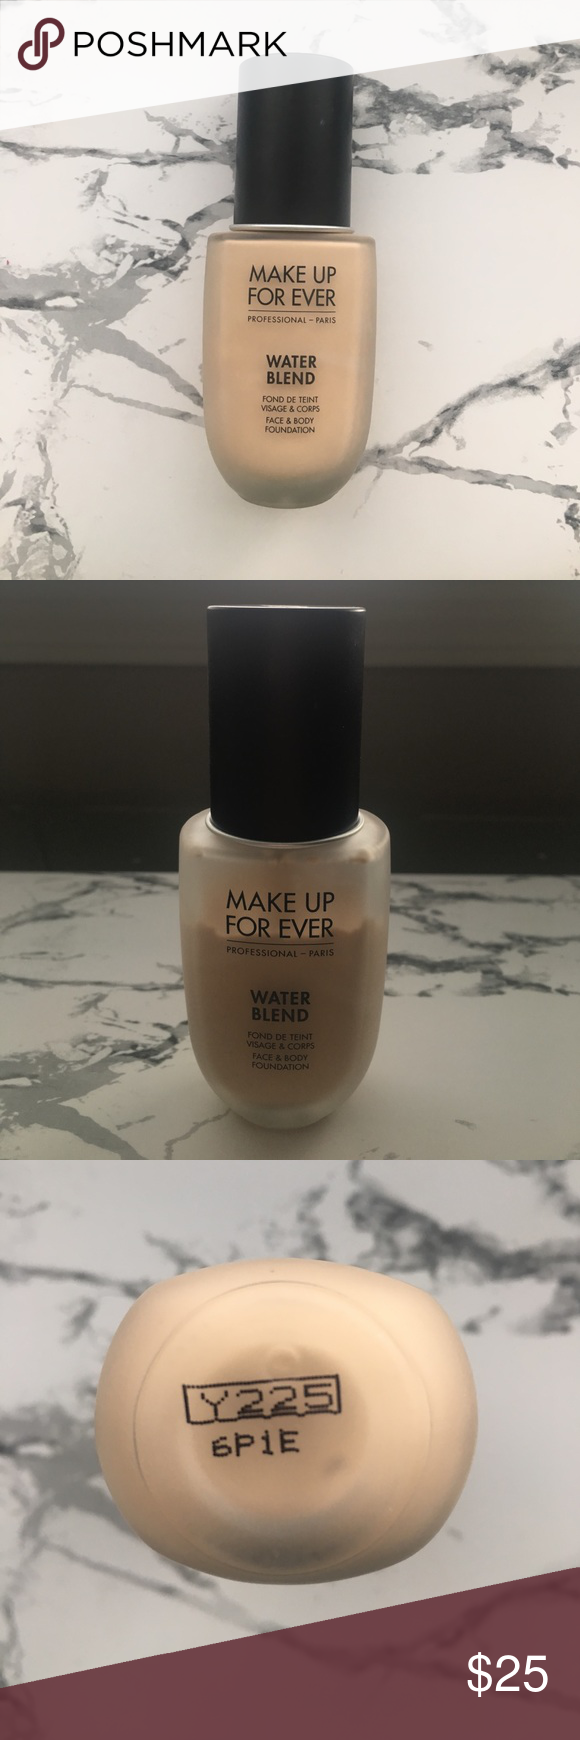 Makeup Forever Water Blend Foundation Shade Y225 This is a